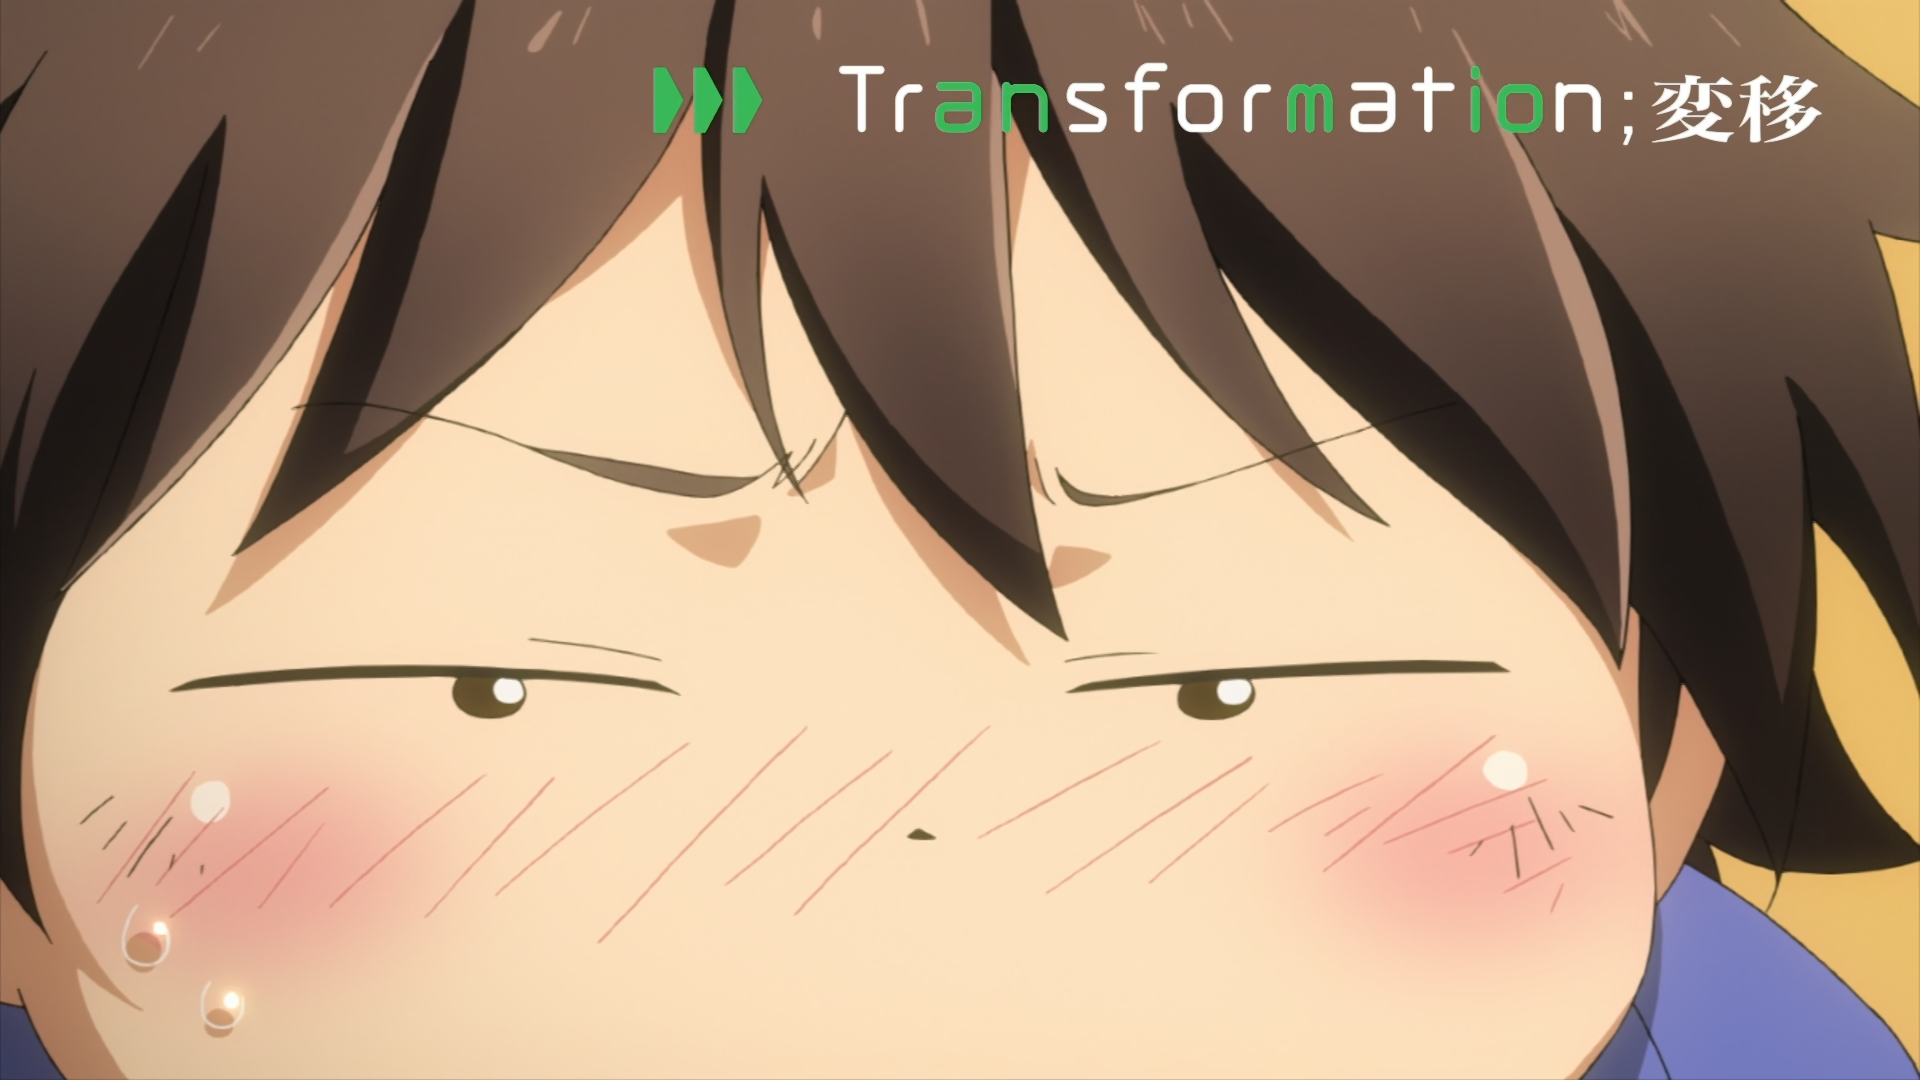 Datei:Transformation.png